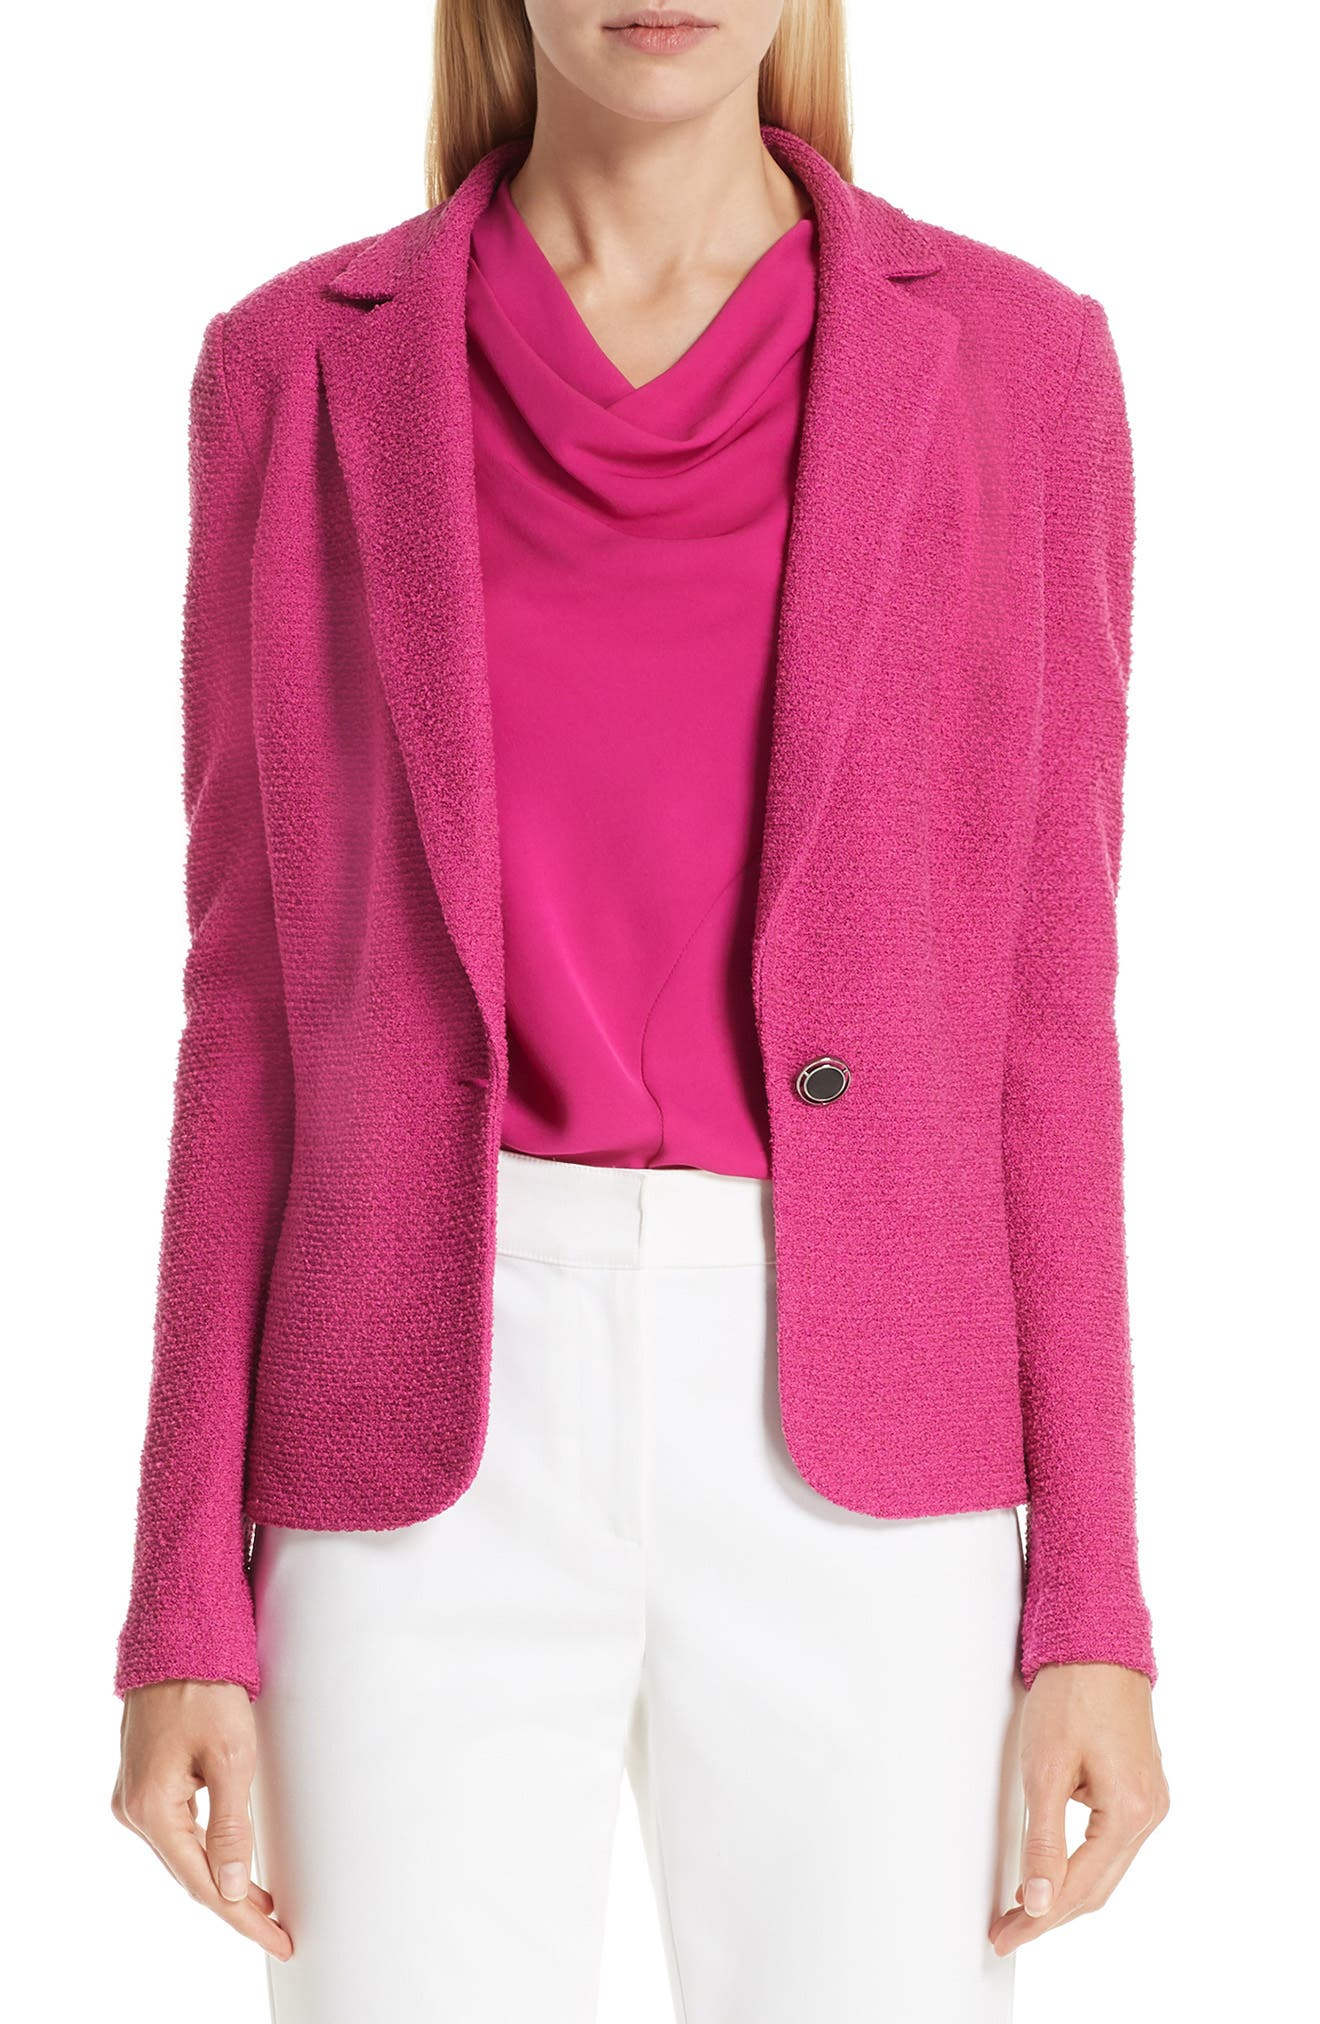 ST. JOHN COLLECTION Refined Knit Jacket, Main, color, CAMELLIA